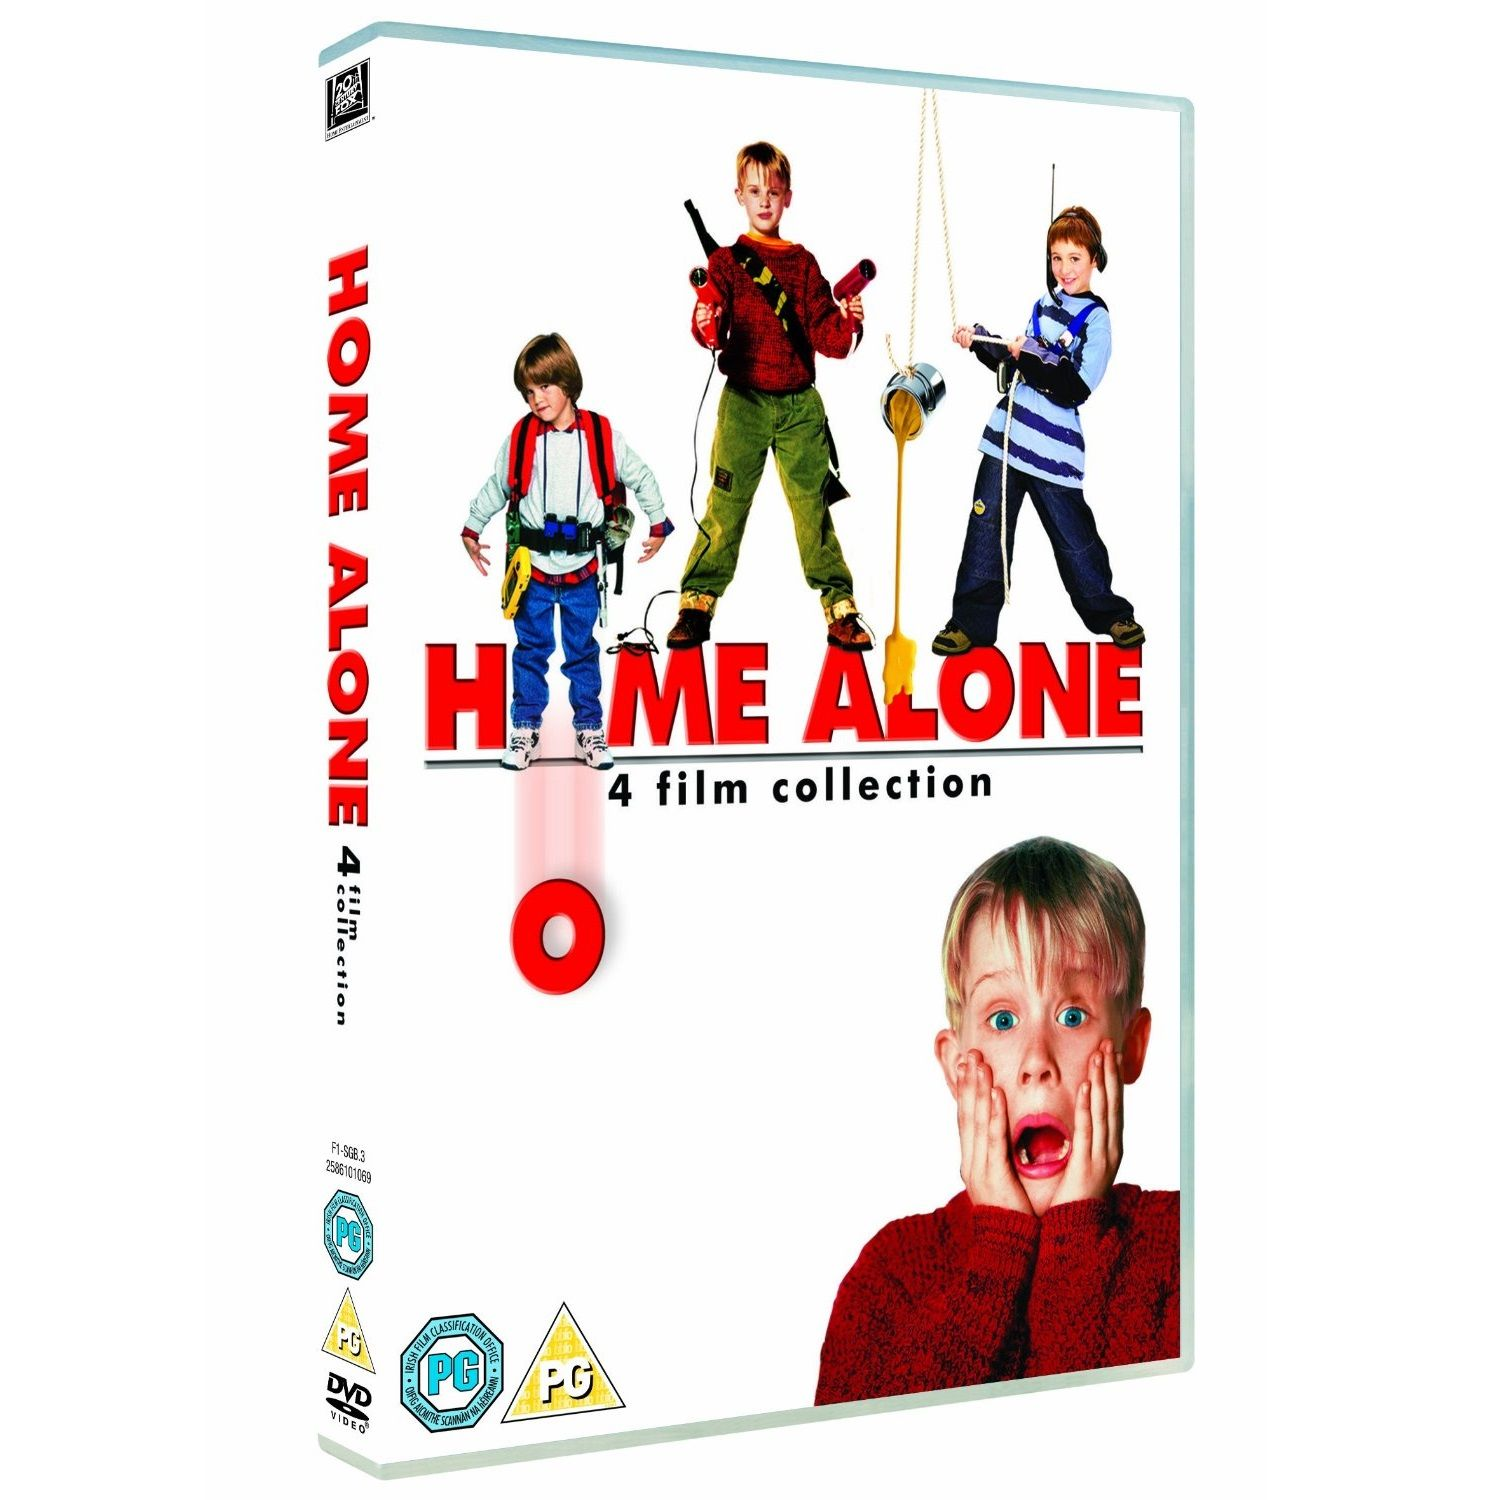 bargain home alone collection dvd now 5 at amazon dvd uk home rh pinterest com